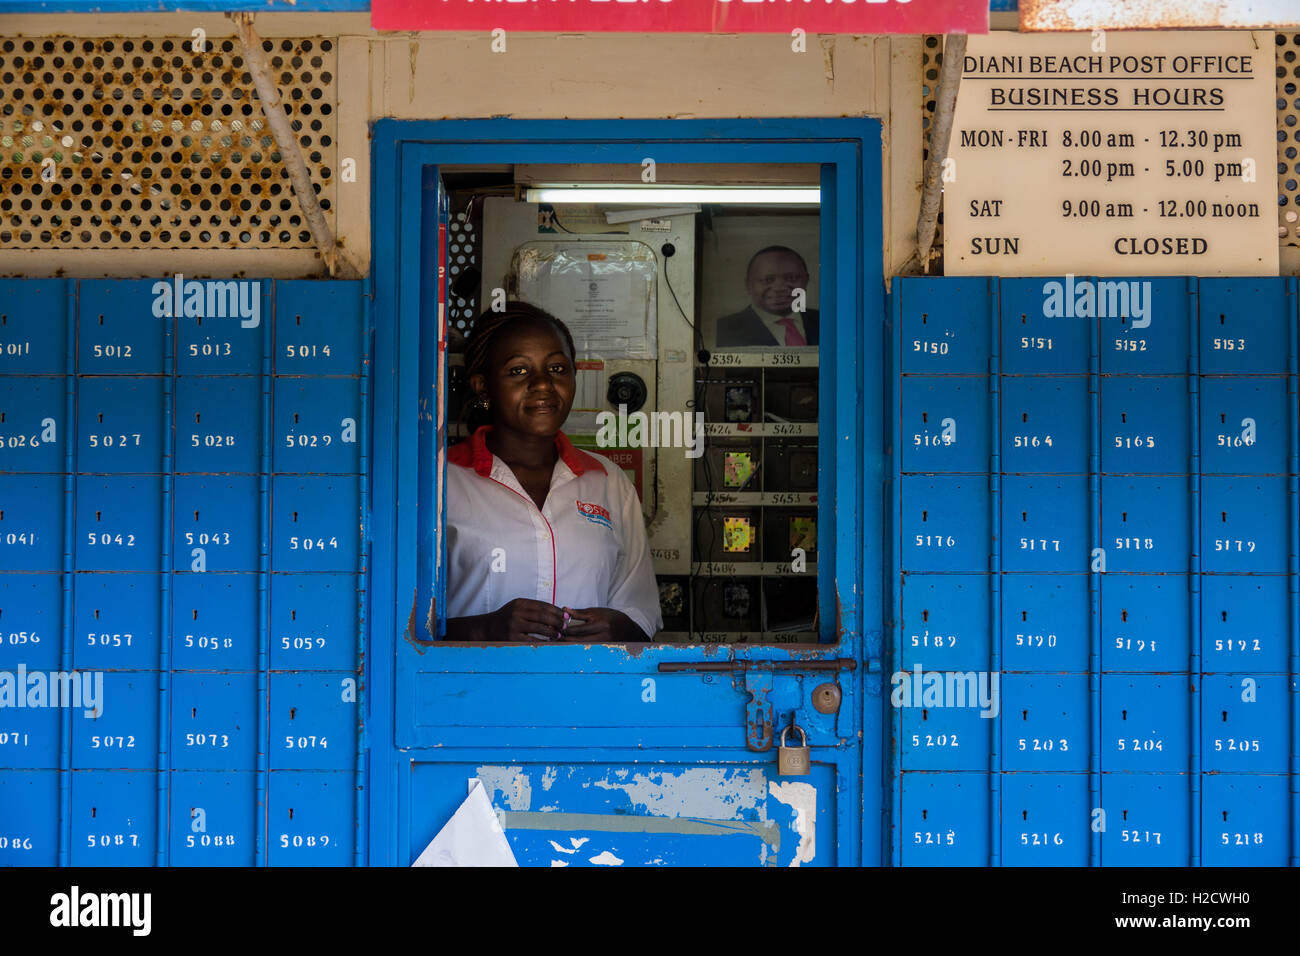 a postal worker tends a post office in Diani Beach, South Coast, Kenya - Stock Image